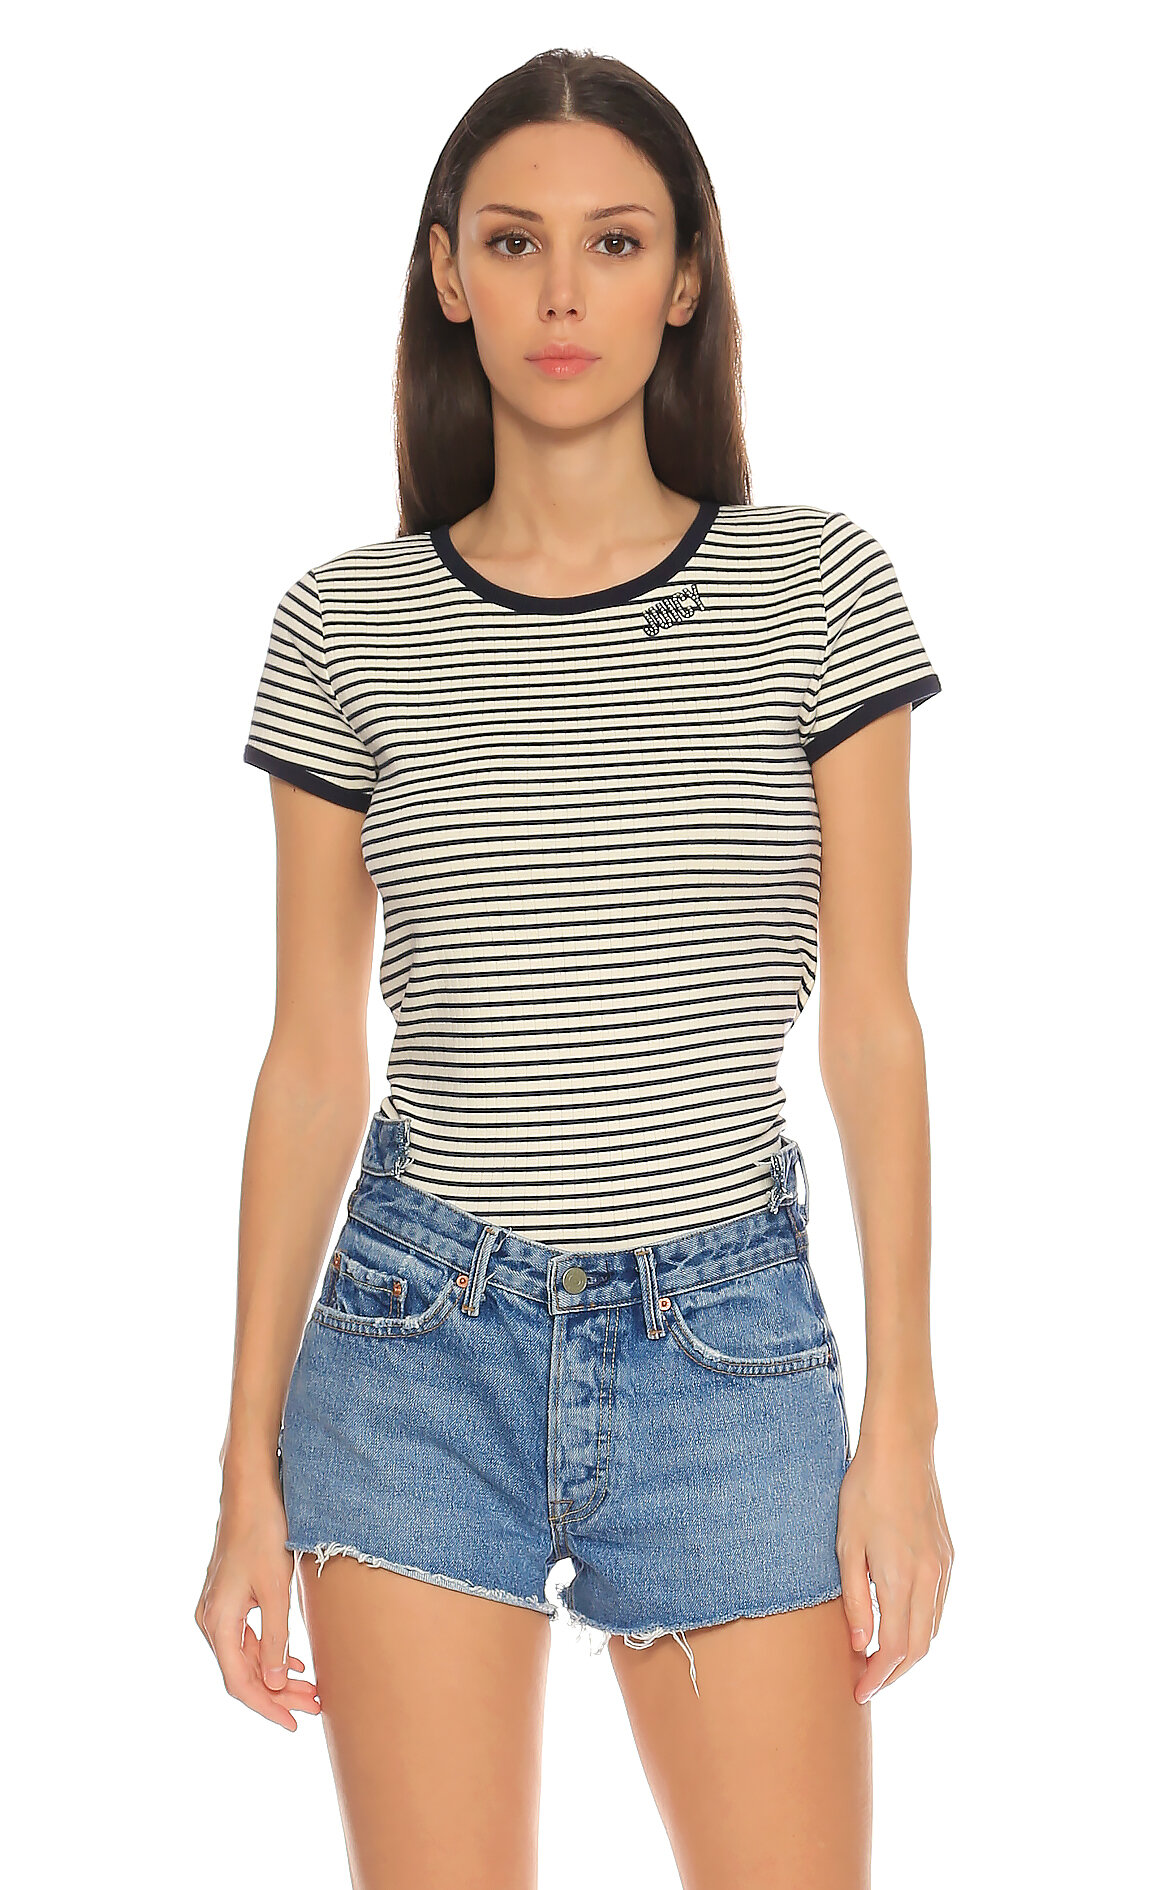 Juicy Couture-Juicy Couture Çizgili Lacivert T-Shirt